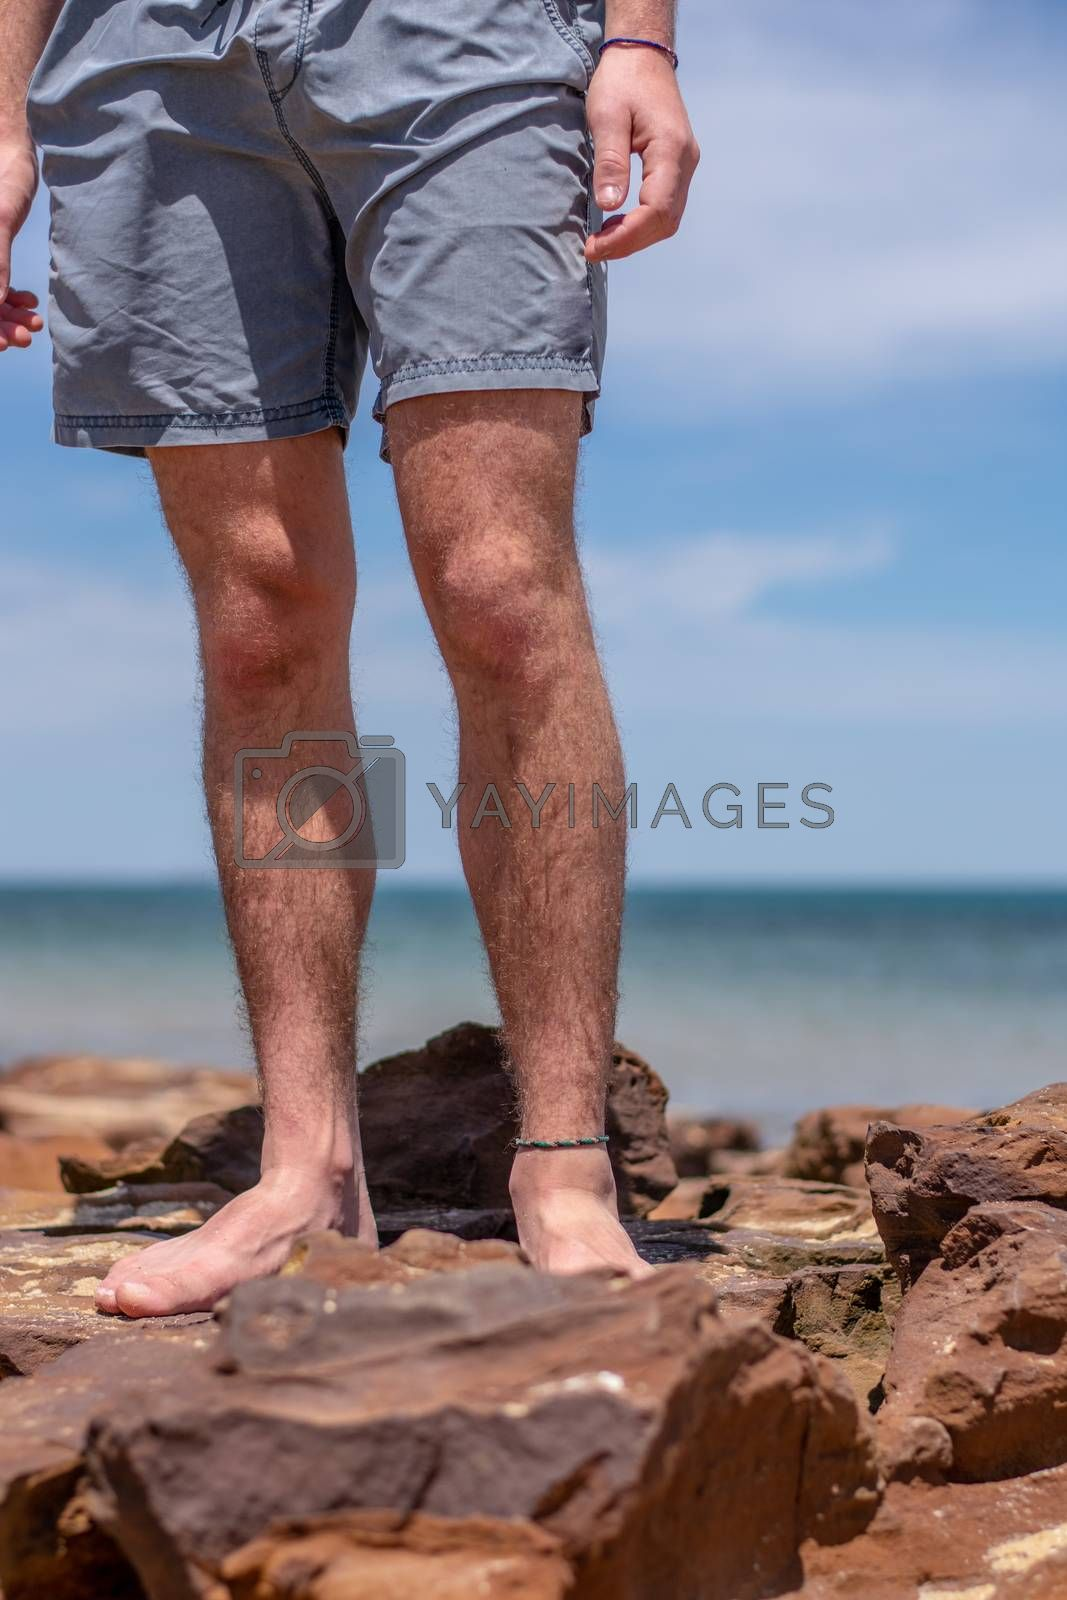 Man's hairy legs on a rocky beach with view of the ocean and sunny blue sky